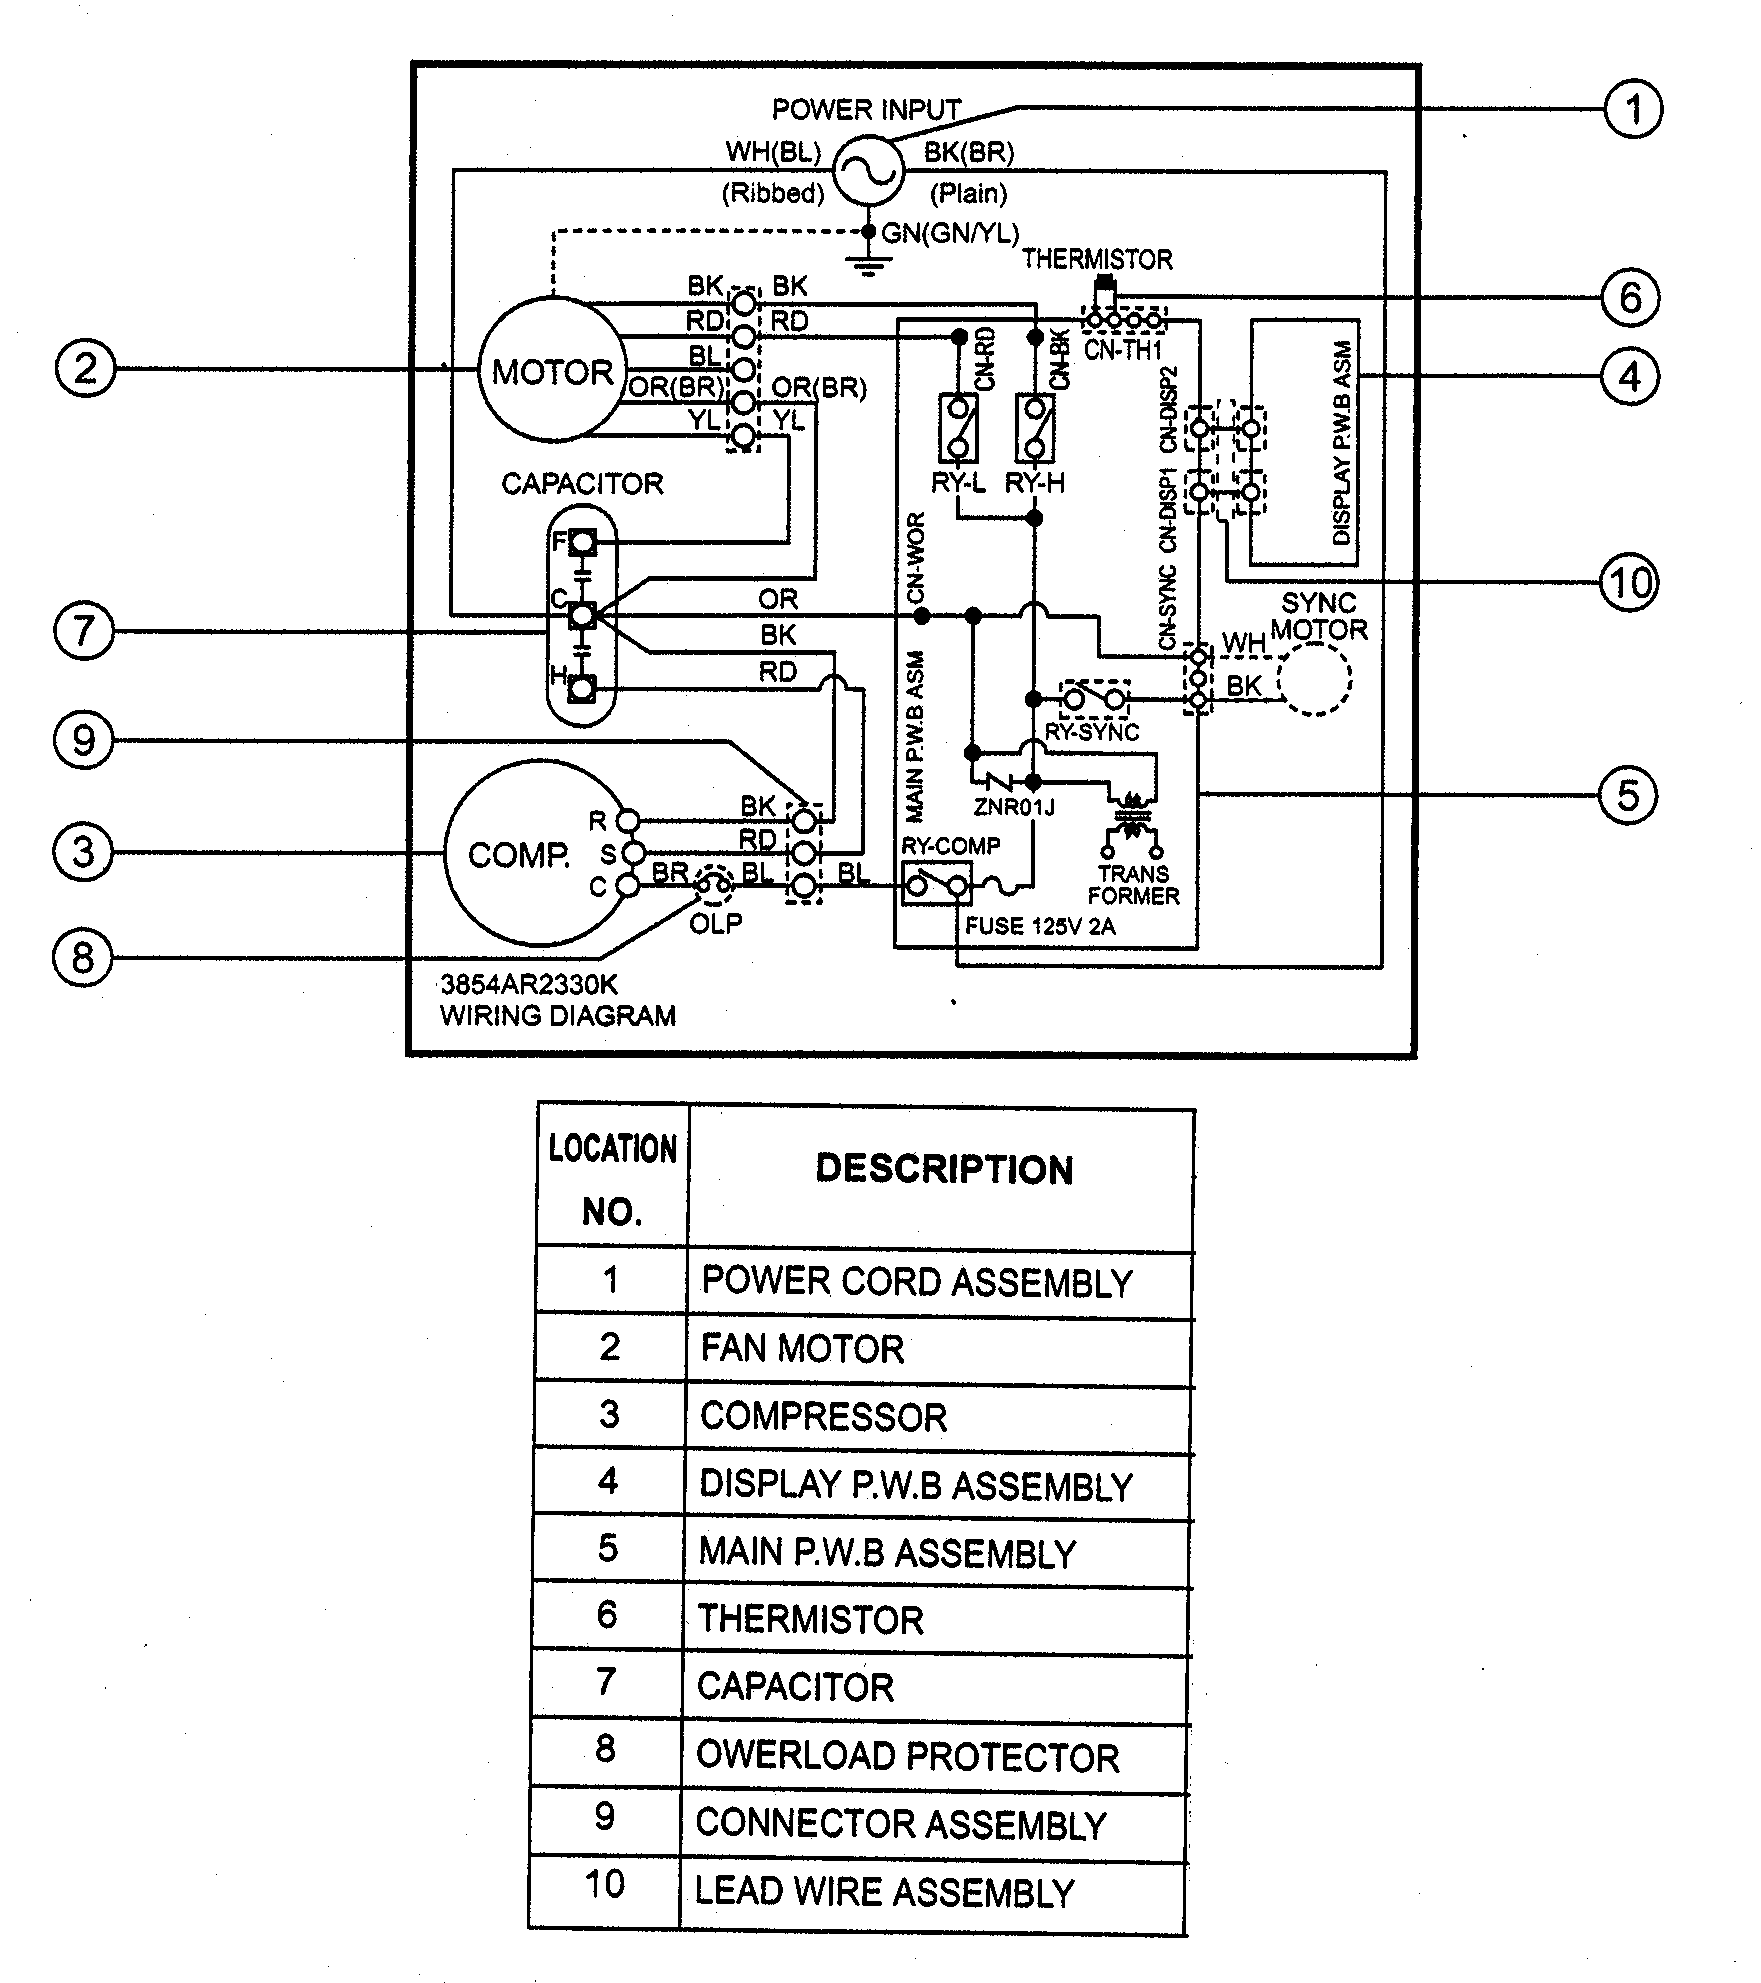 Scully Thermistor Wiring Diagram Scully Electric Cable